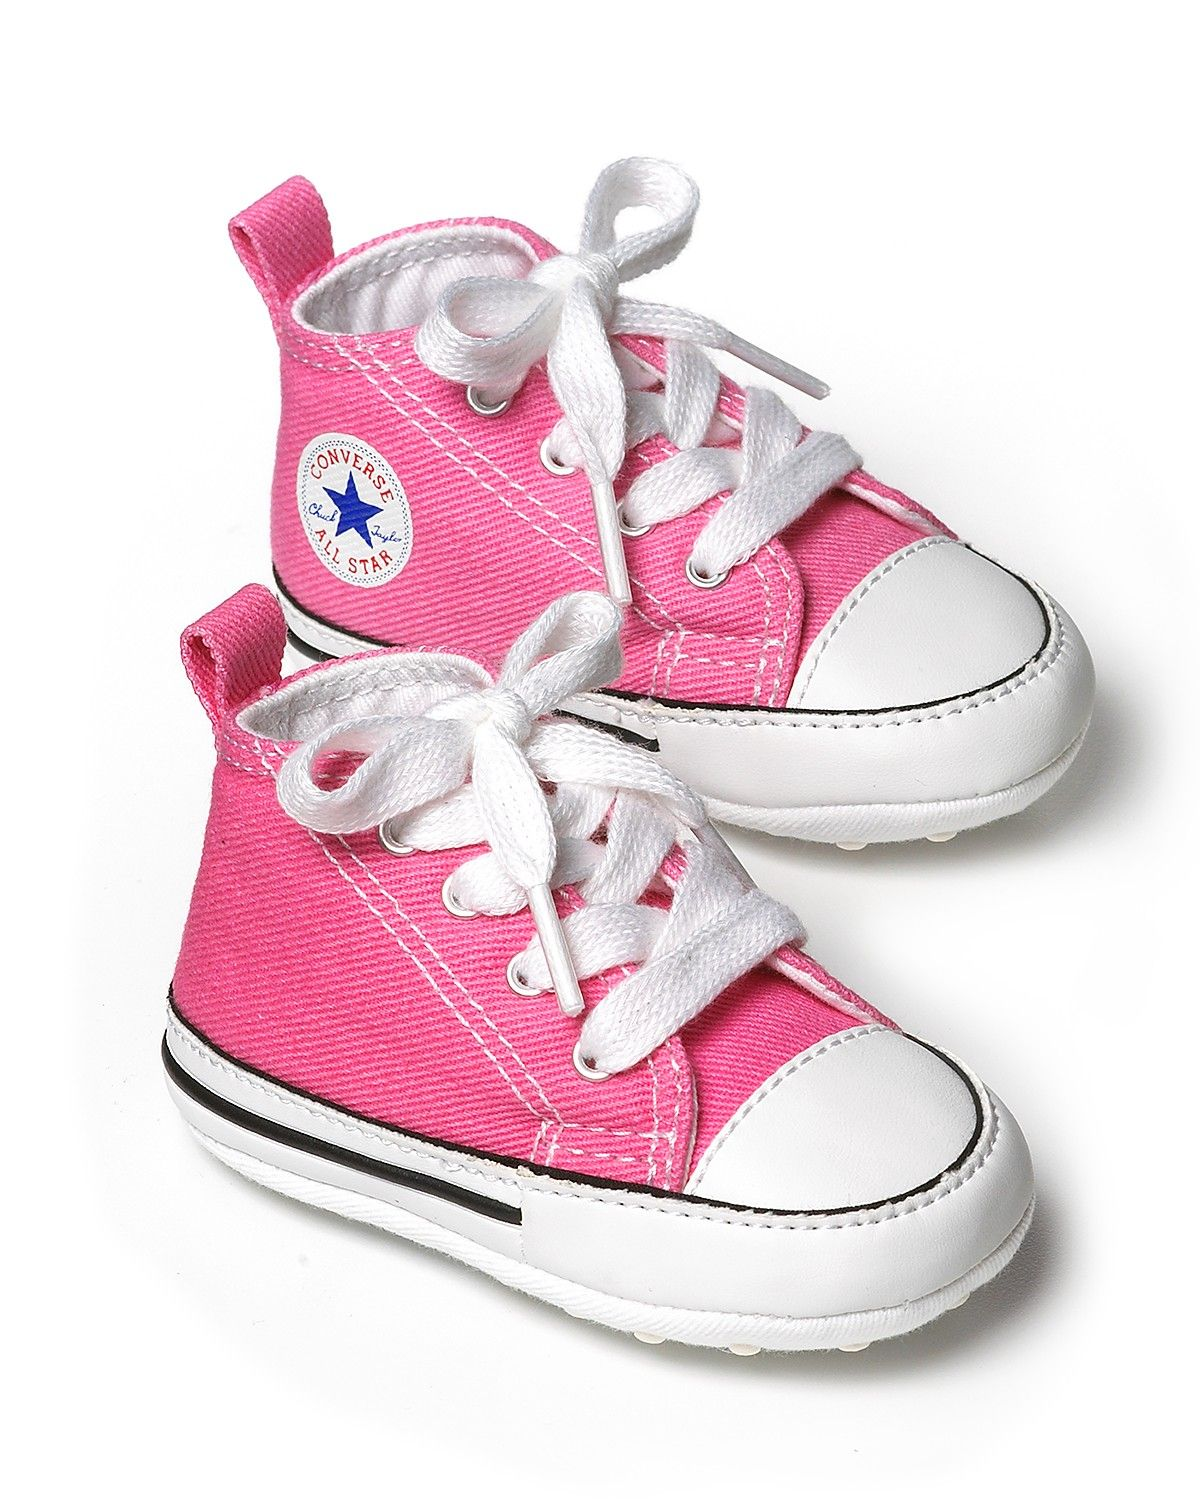 "Converse Infant ""First Star"" High Top Sneakers"